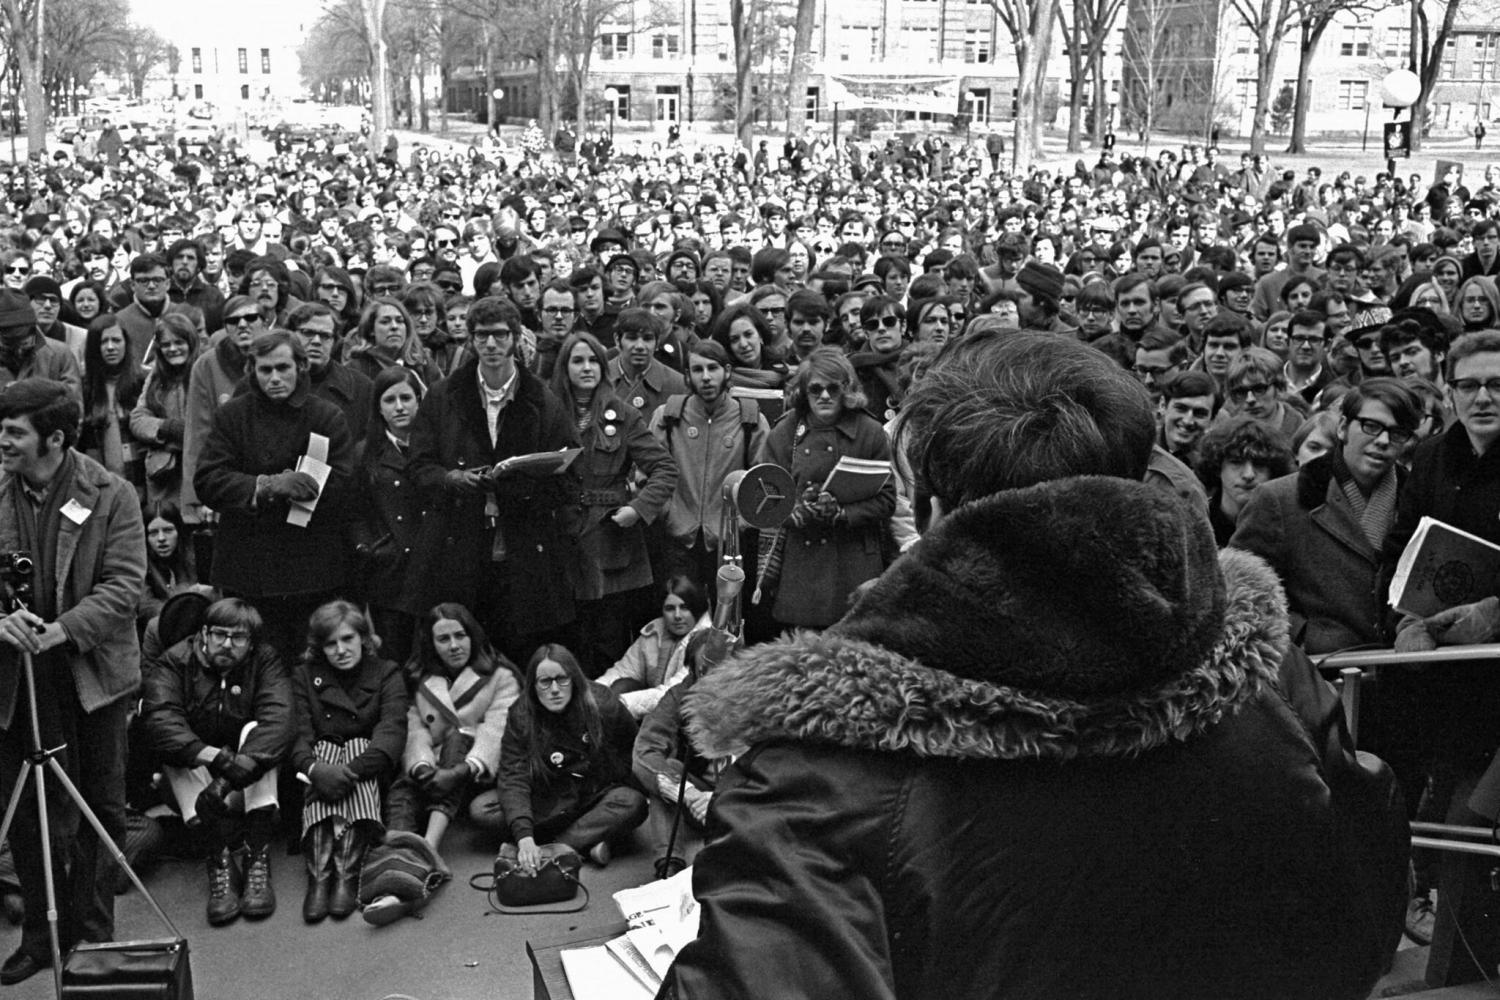 Earth Day 1970 University of Michigan